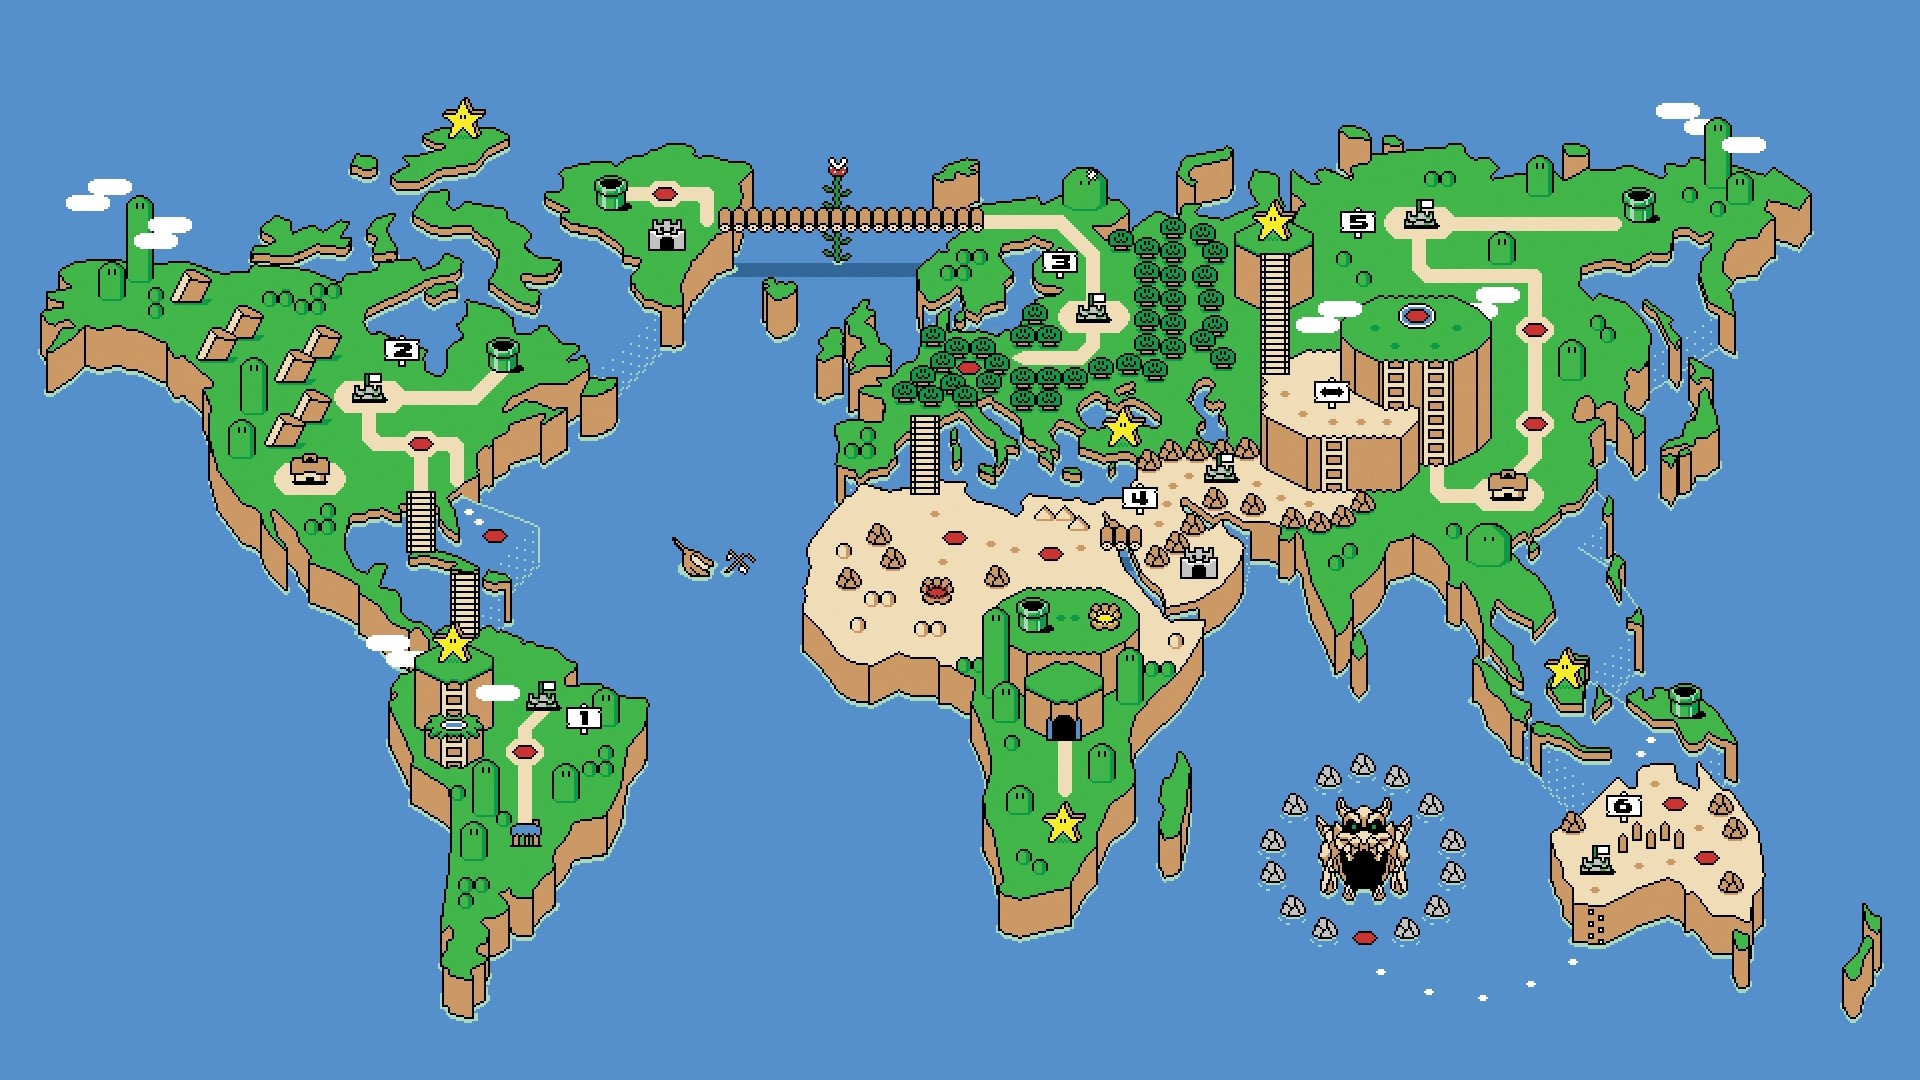 Wallpaper of world map 62 images 1920x1080 super mario world map wallpaper 4703 gumiabroncs Image collections